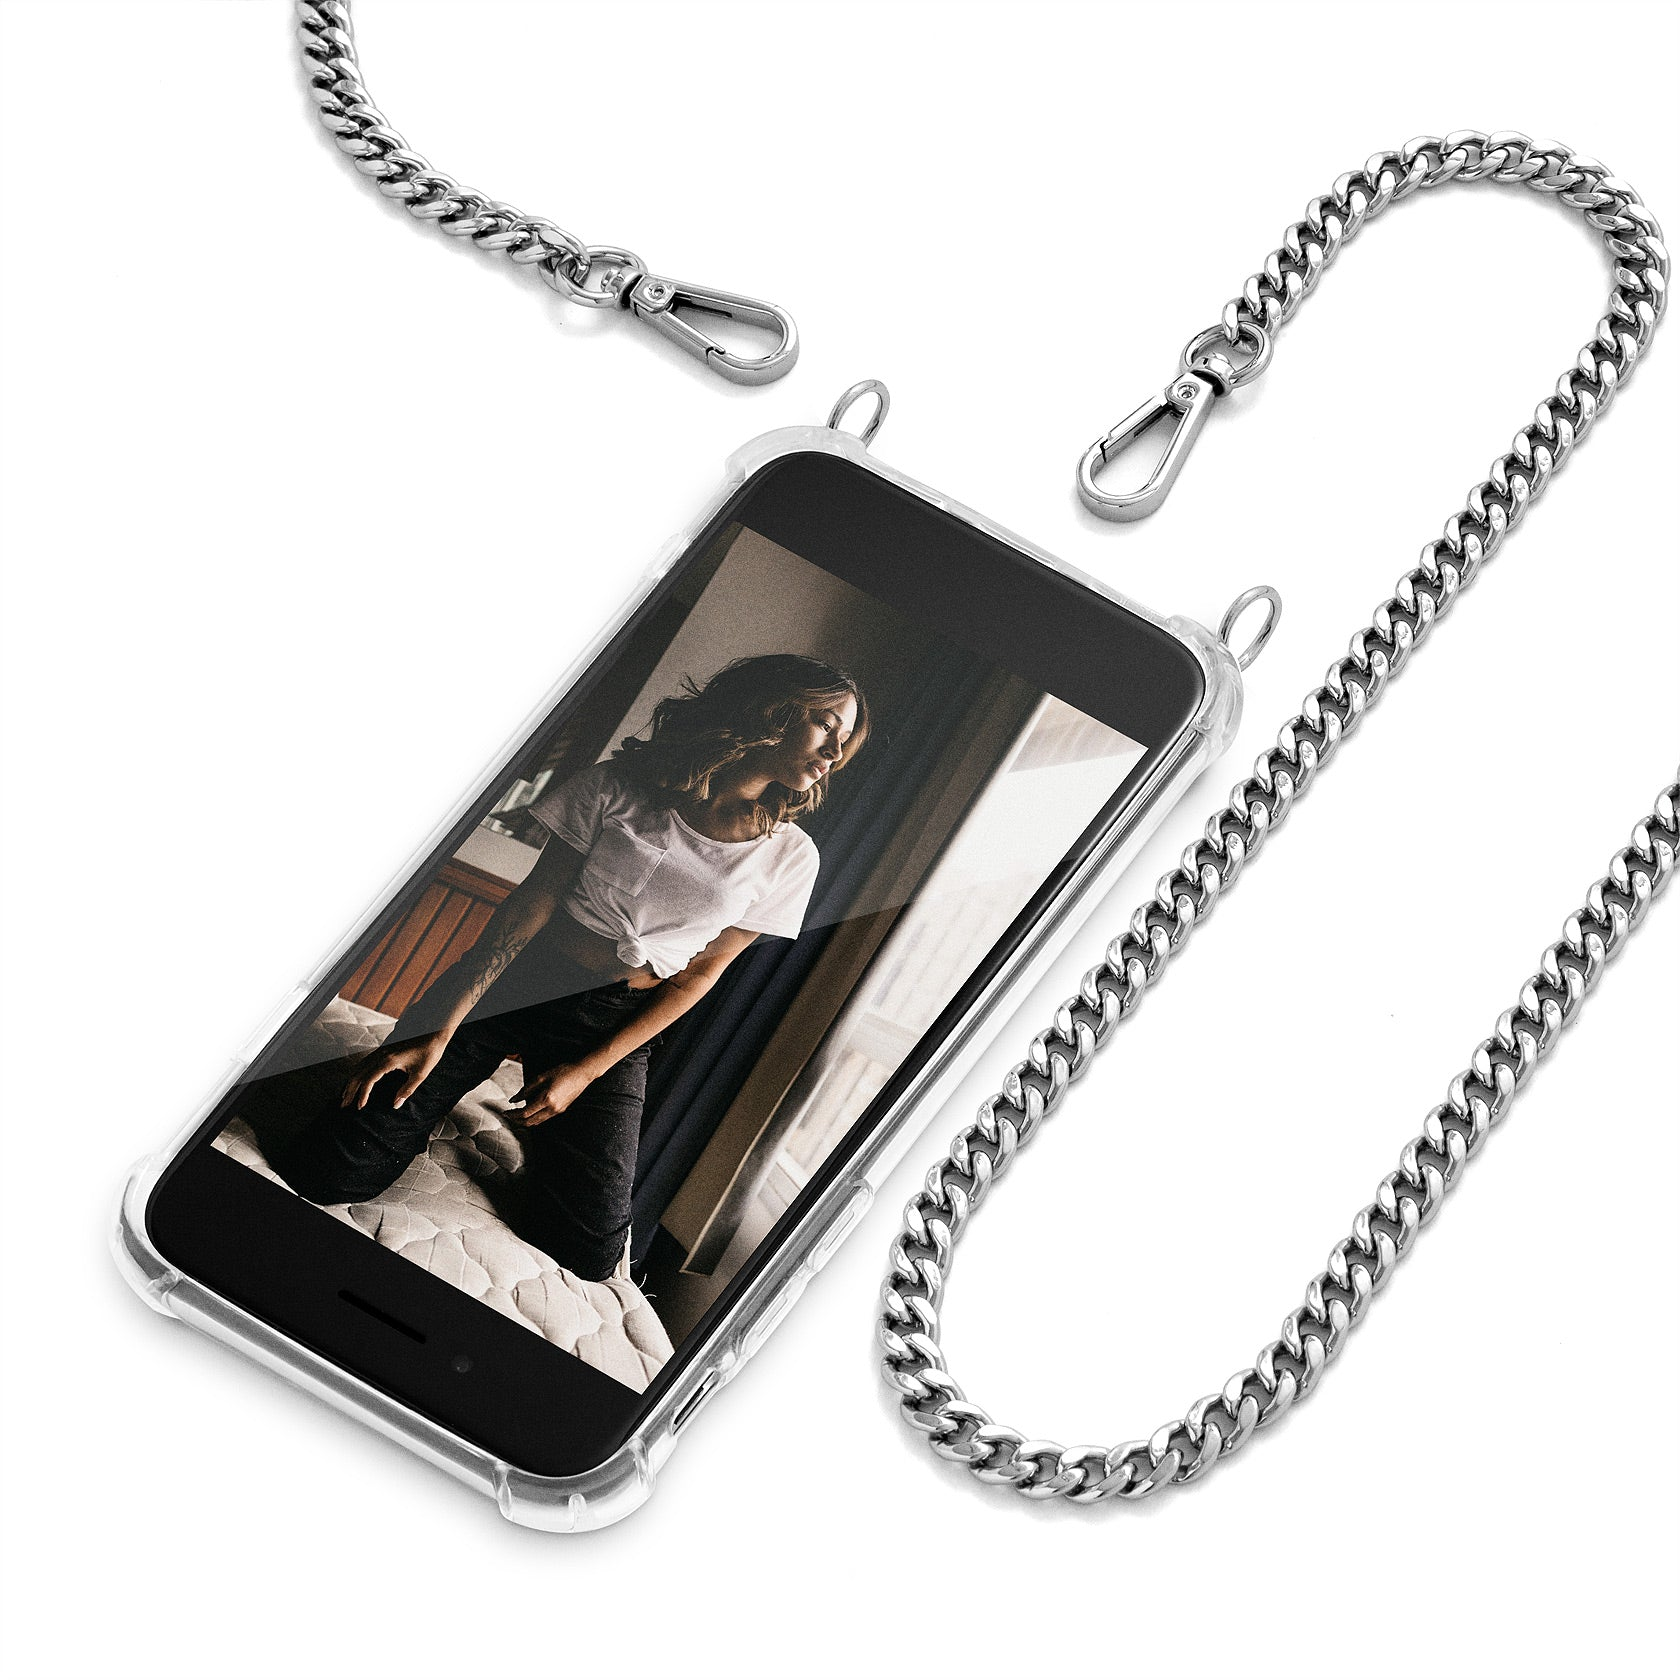 Cross Body Phone Case Necklace | N°5 GLAM SILVER | Cicerly